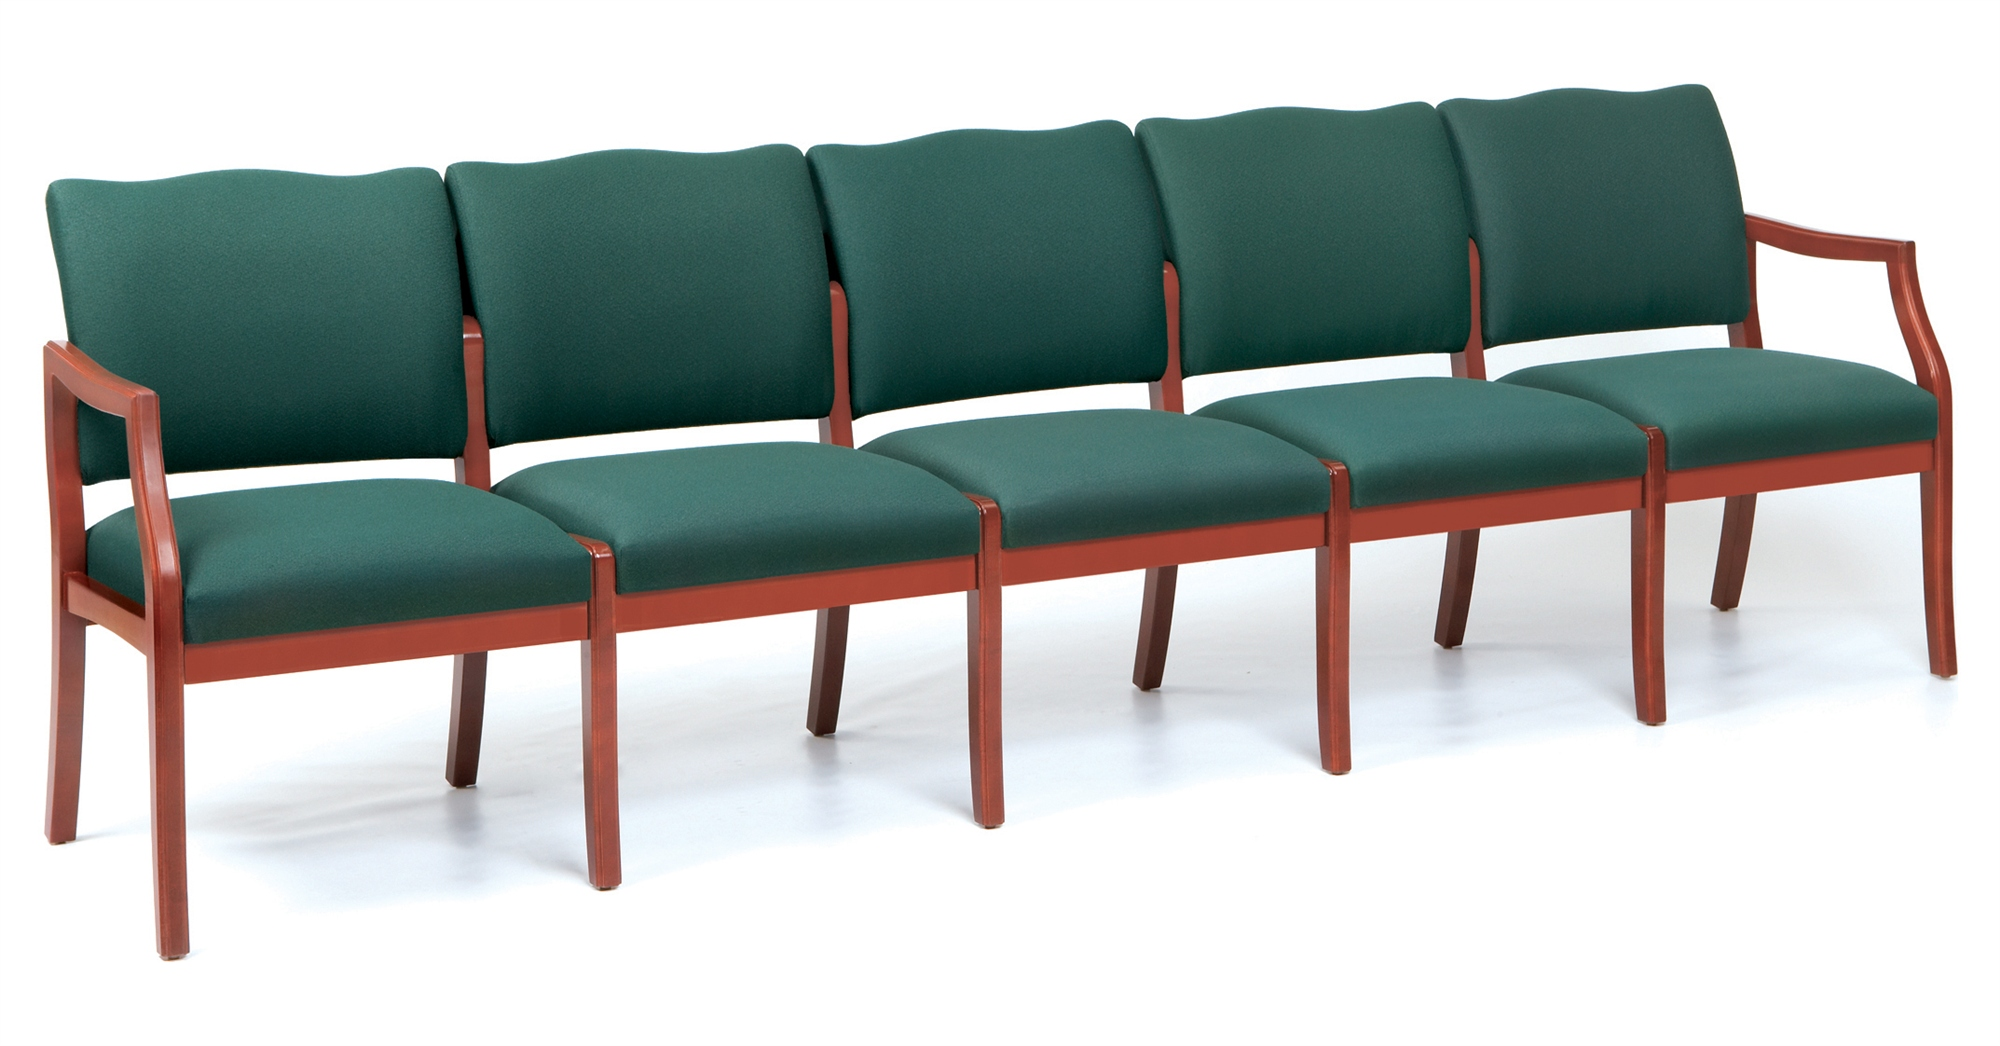 Furniture : Decorative Chairs Lined Up In An Empty Waiting Room Or.